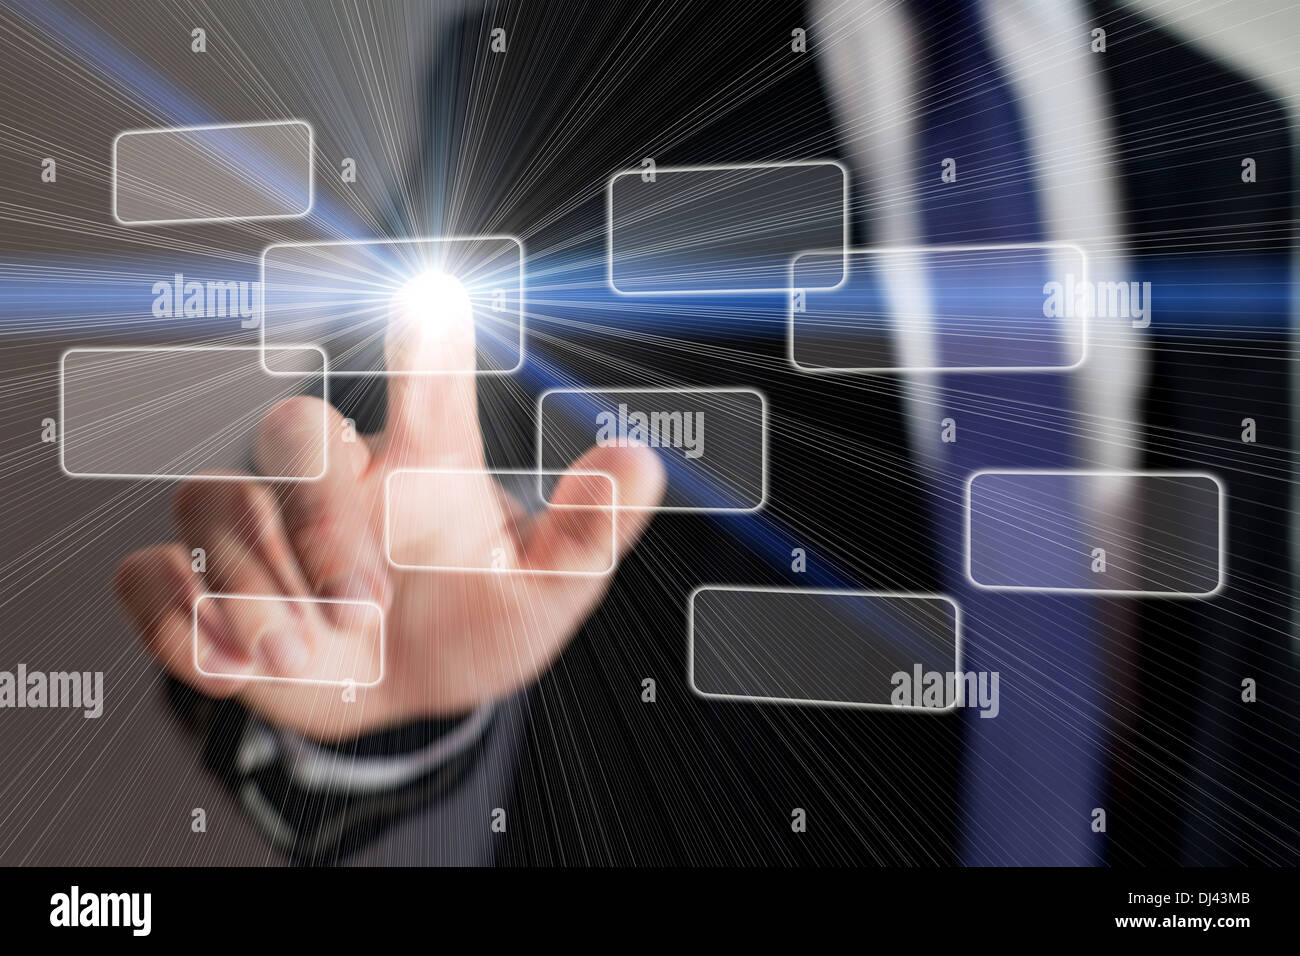 new technology - Stock Image